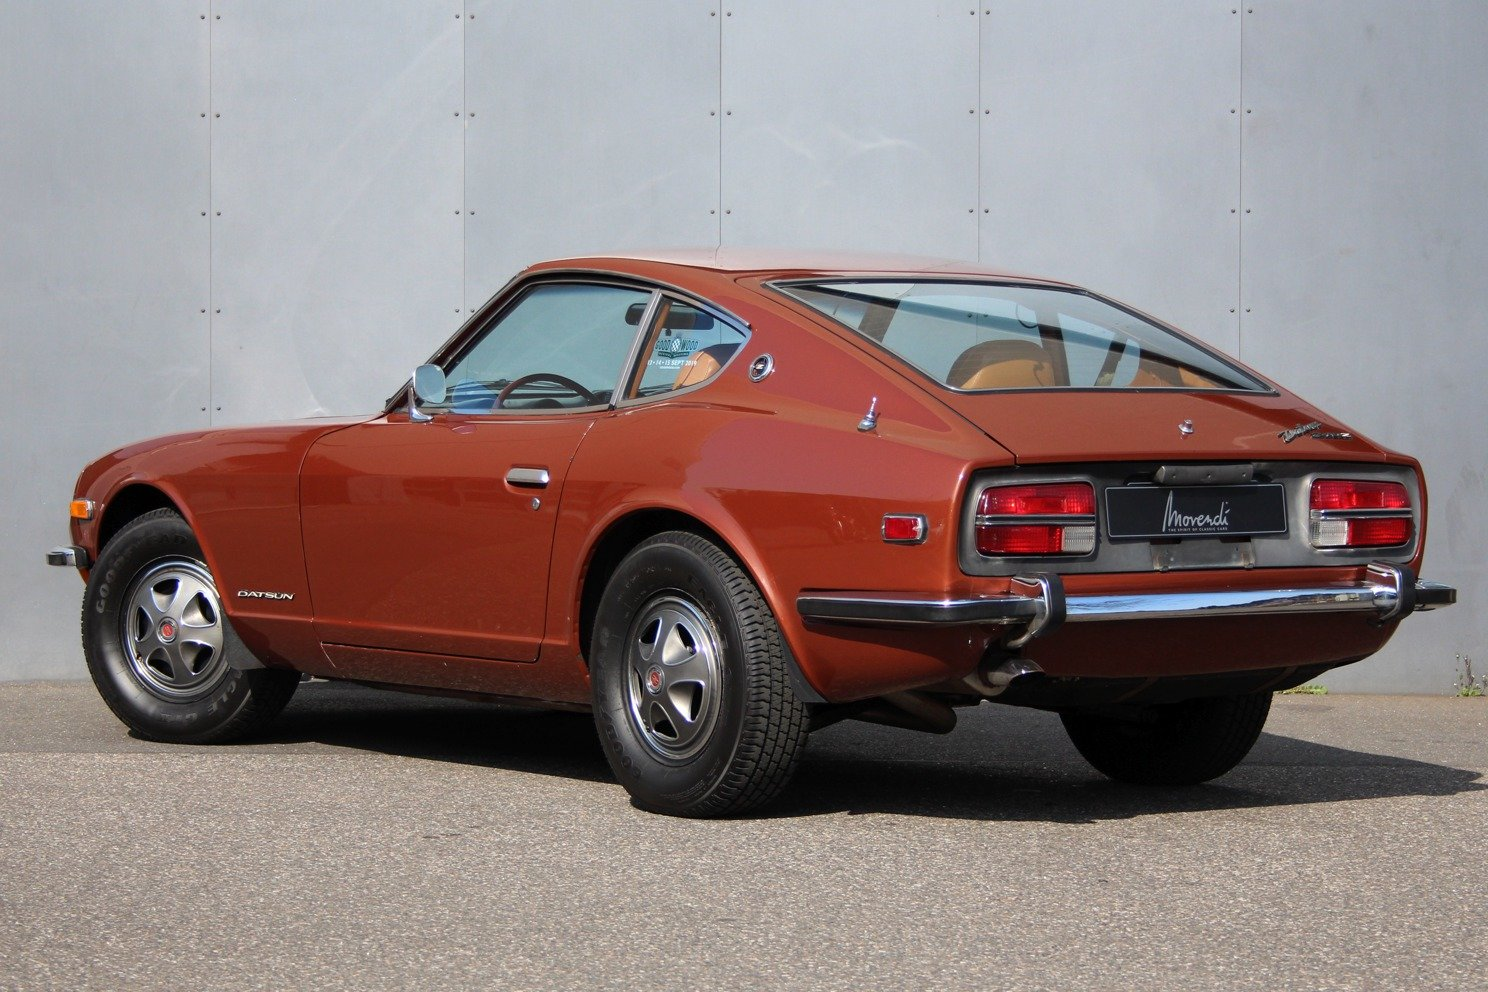 1973 Datsun 240Z LHD For Sale (picture 2 of 6)